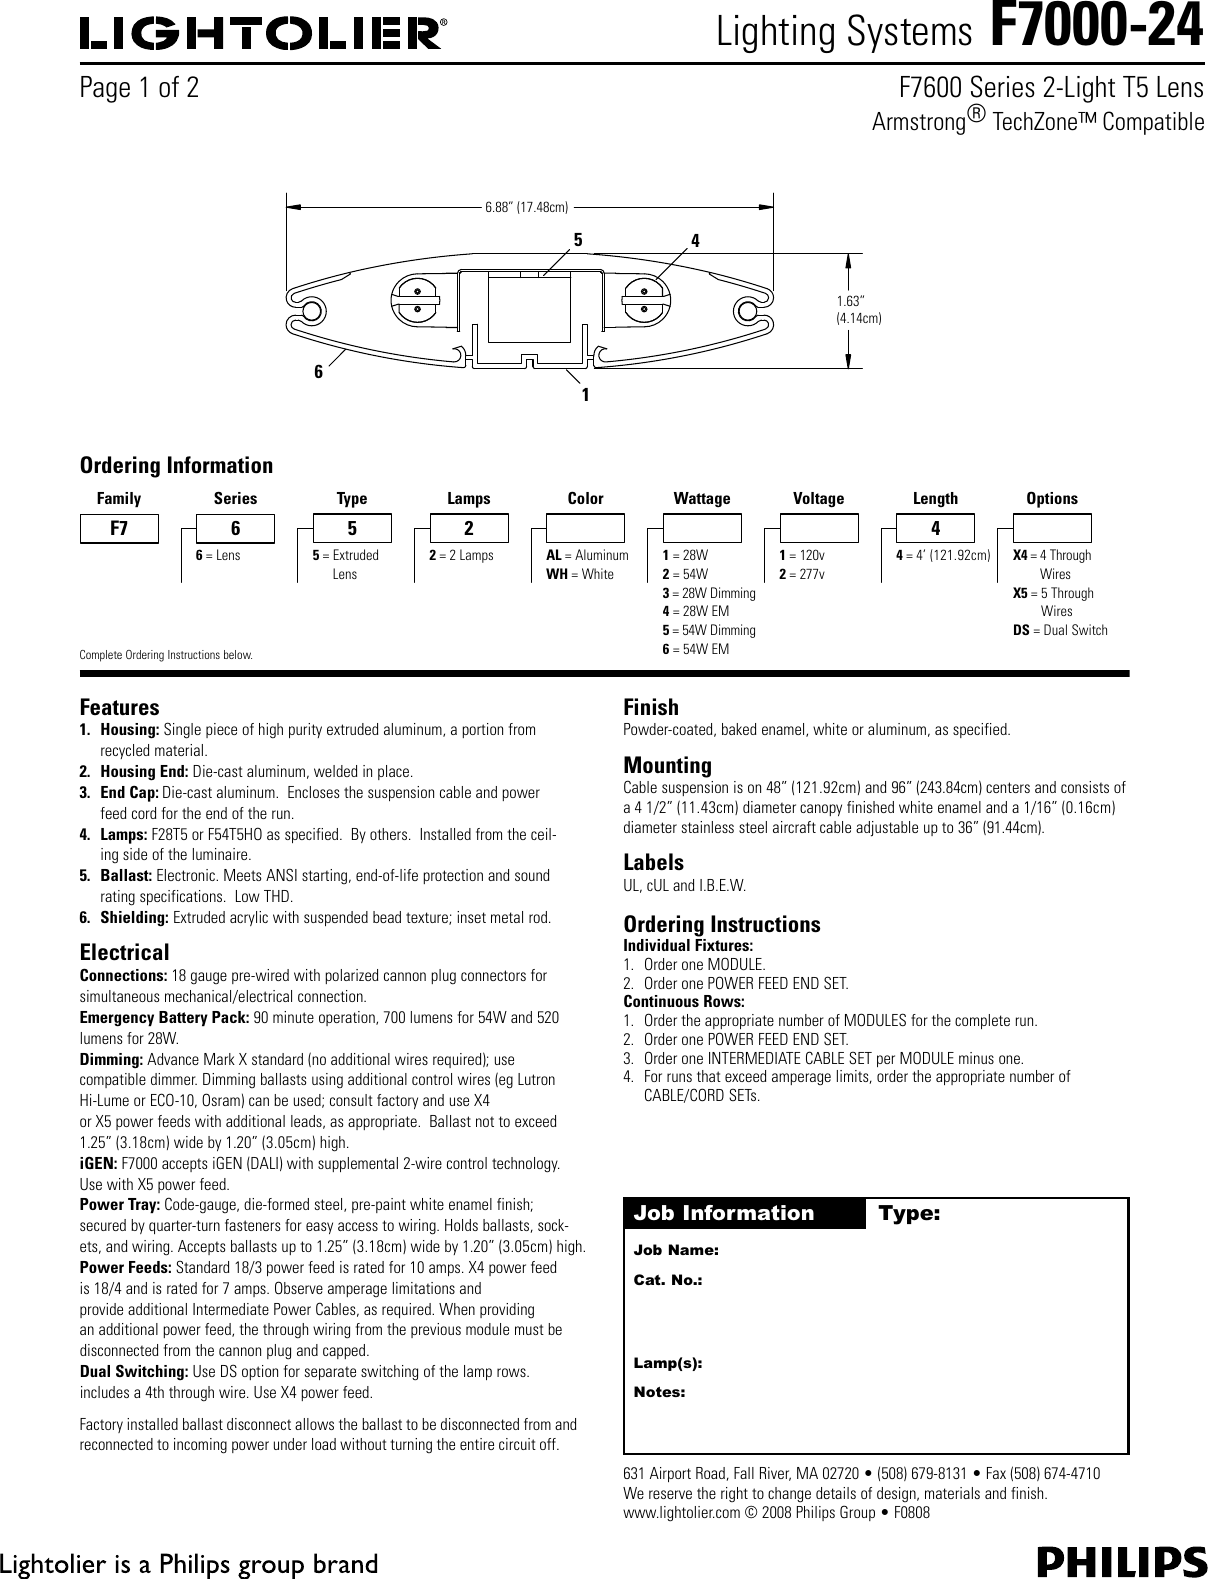 Lightolier Wiring Diagram Schematics Lighting Systems F7000 24 Users Manual Basic Electrical Diagrams